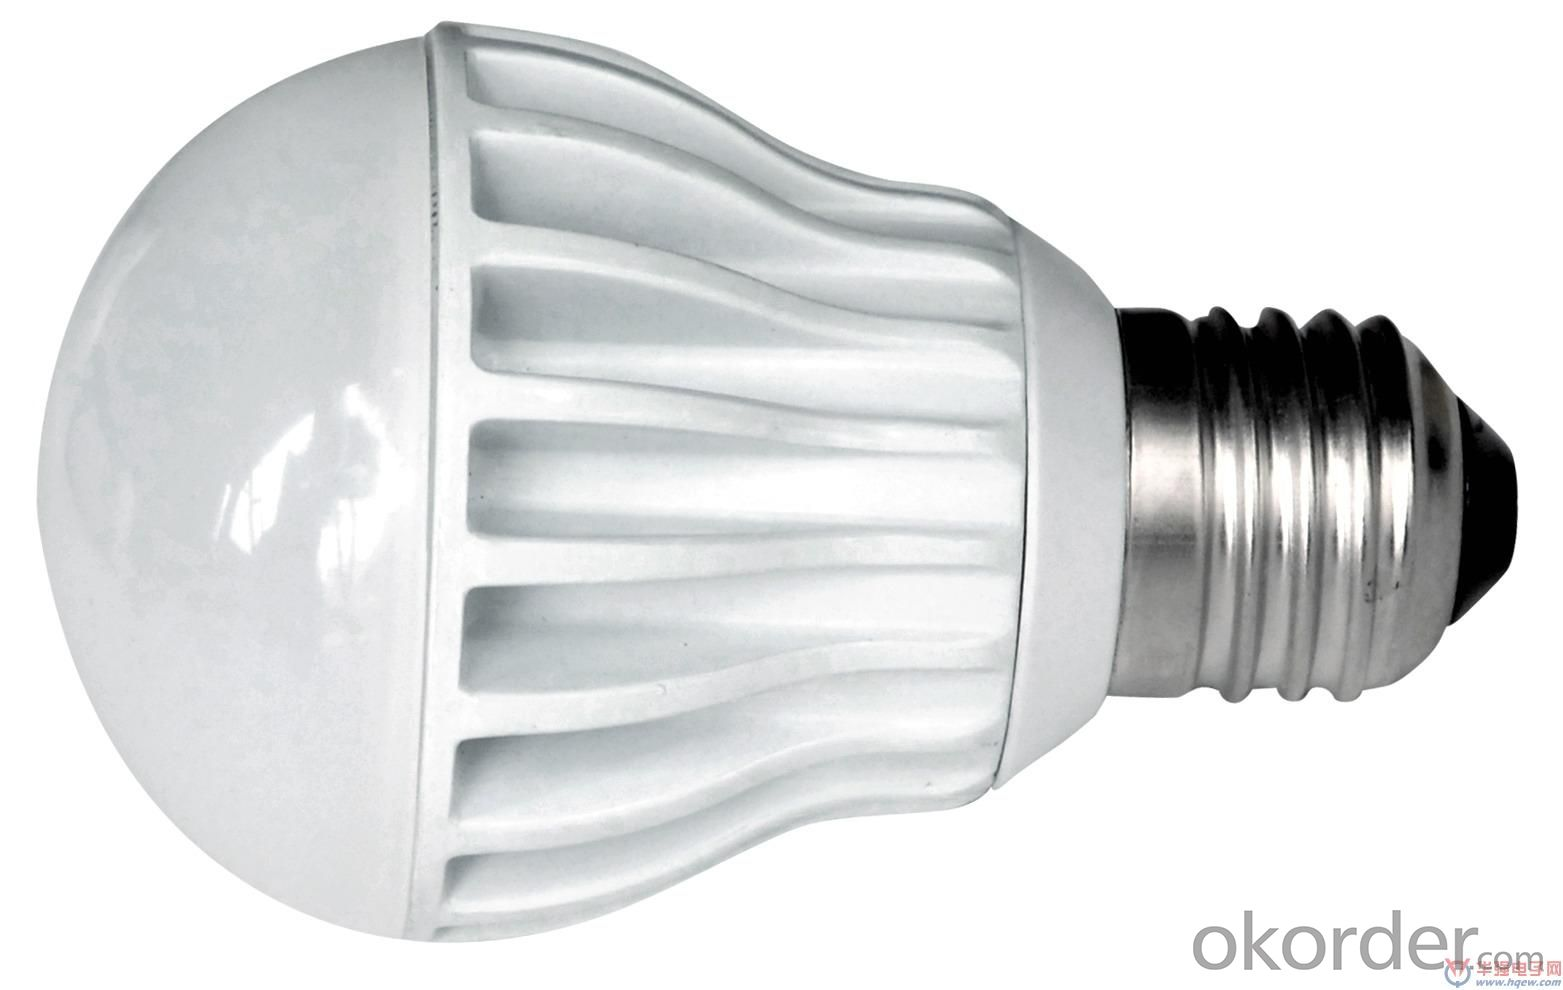 7W LED bulb light CRI80, 60W incandescent replacement, UL